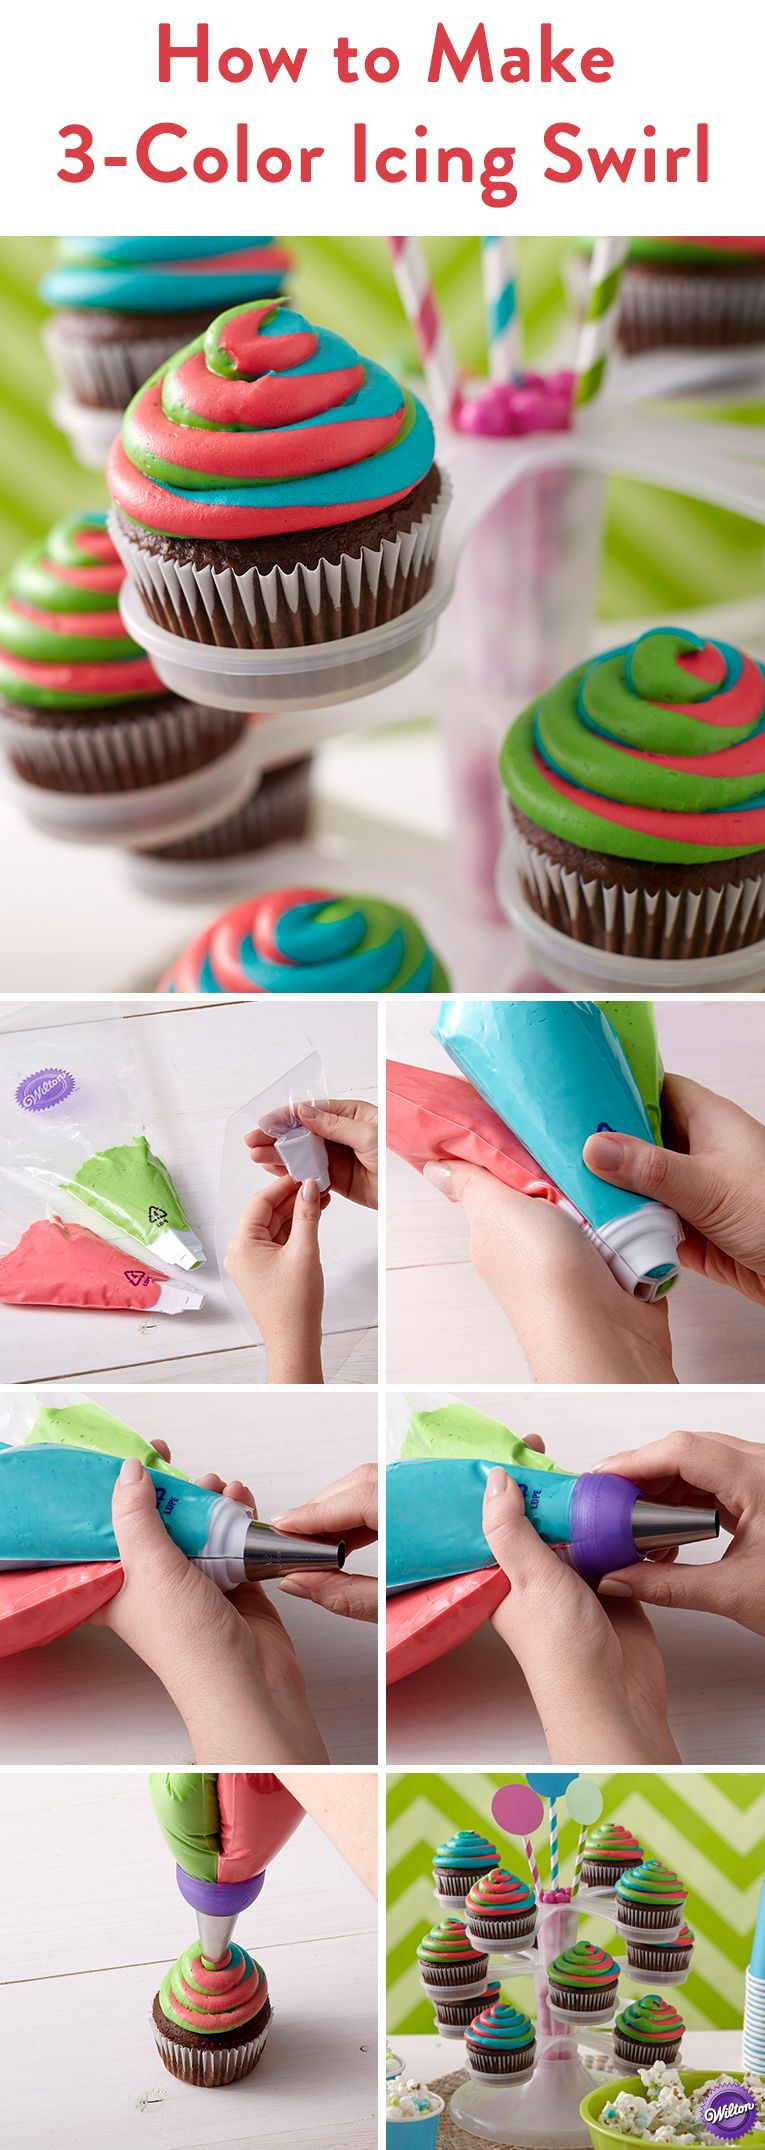 Food coloring online india - Natural Food Dye India Tree Color Chart Helpful For Decorating Sweet Treats With Natural Food Color Cool Things Pinterest Coloring Pastel And